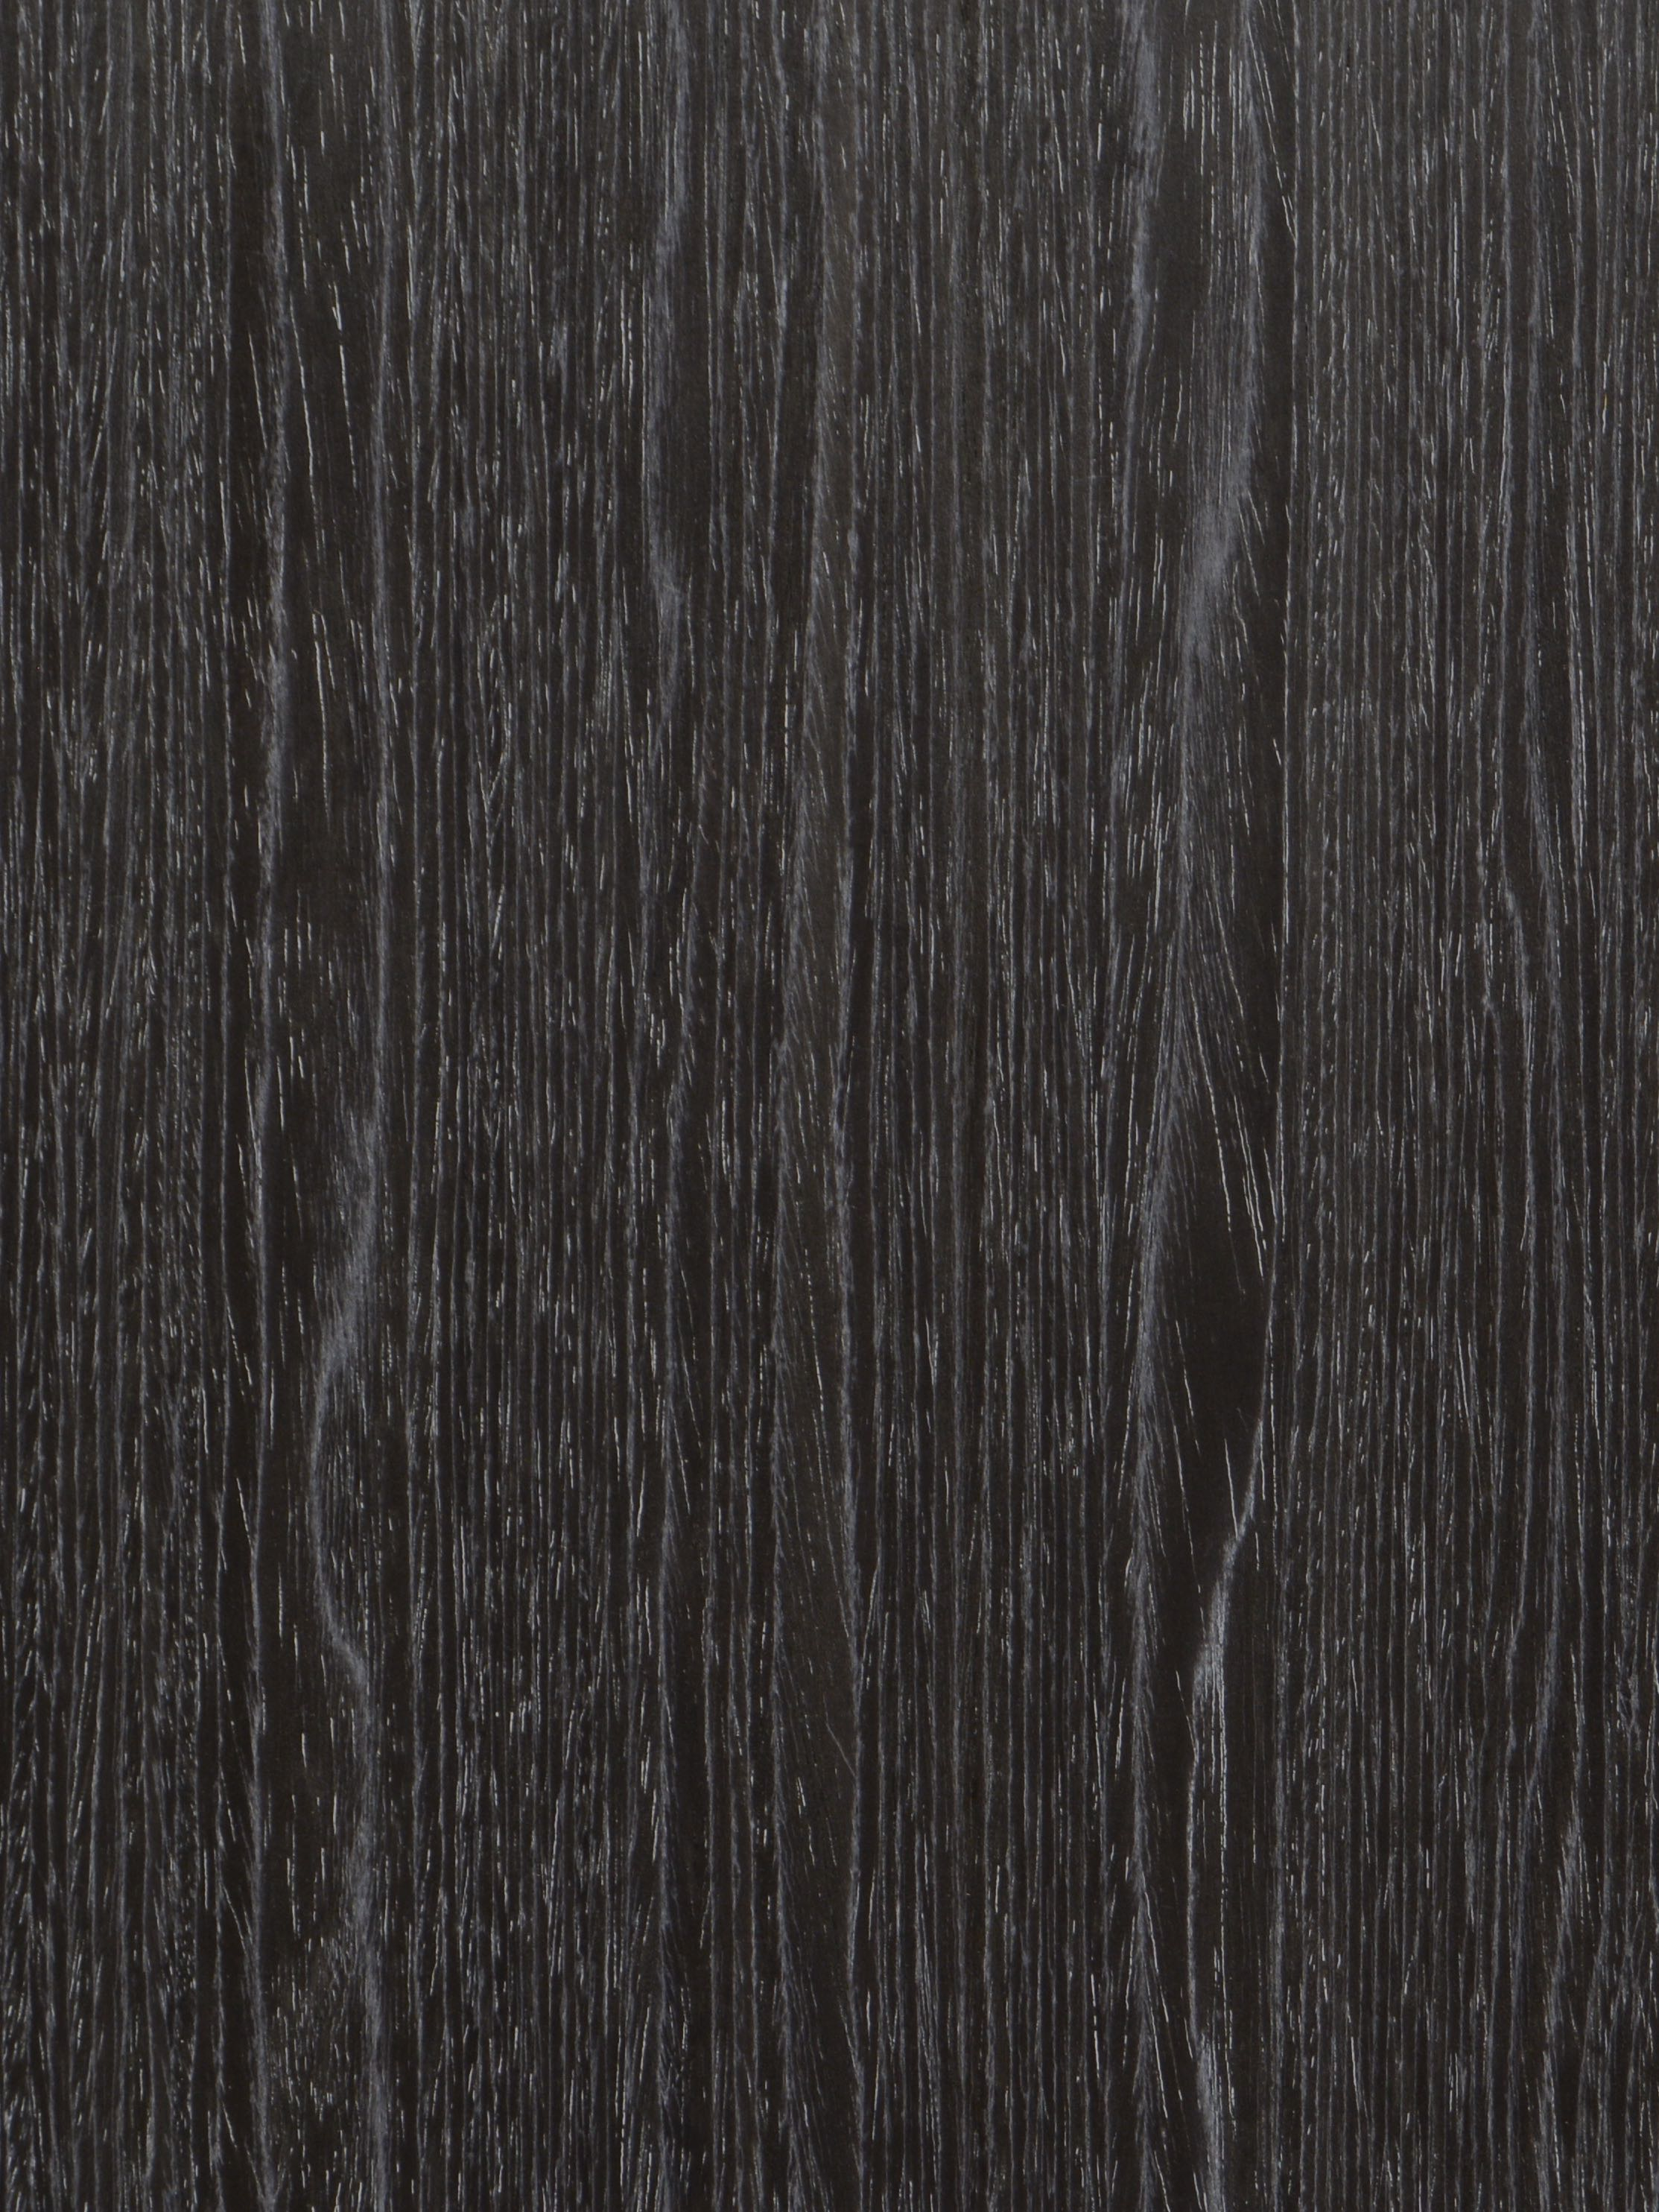 Allstyle Cabinet Doors Recon Veneer Black Oak Kitchen